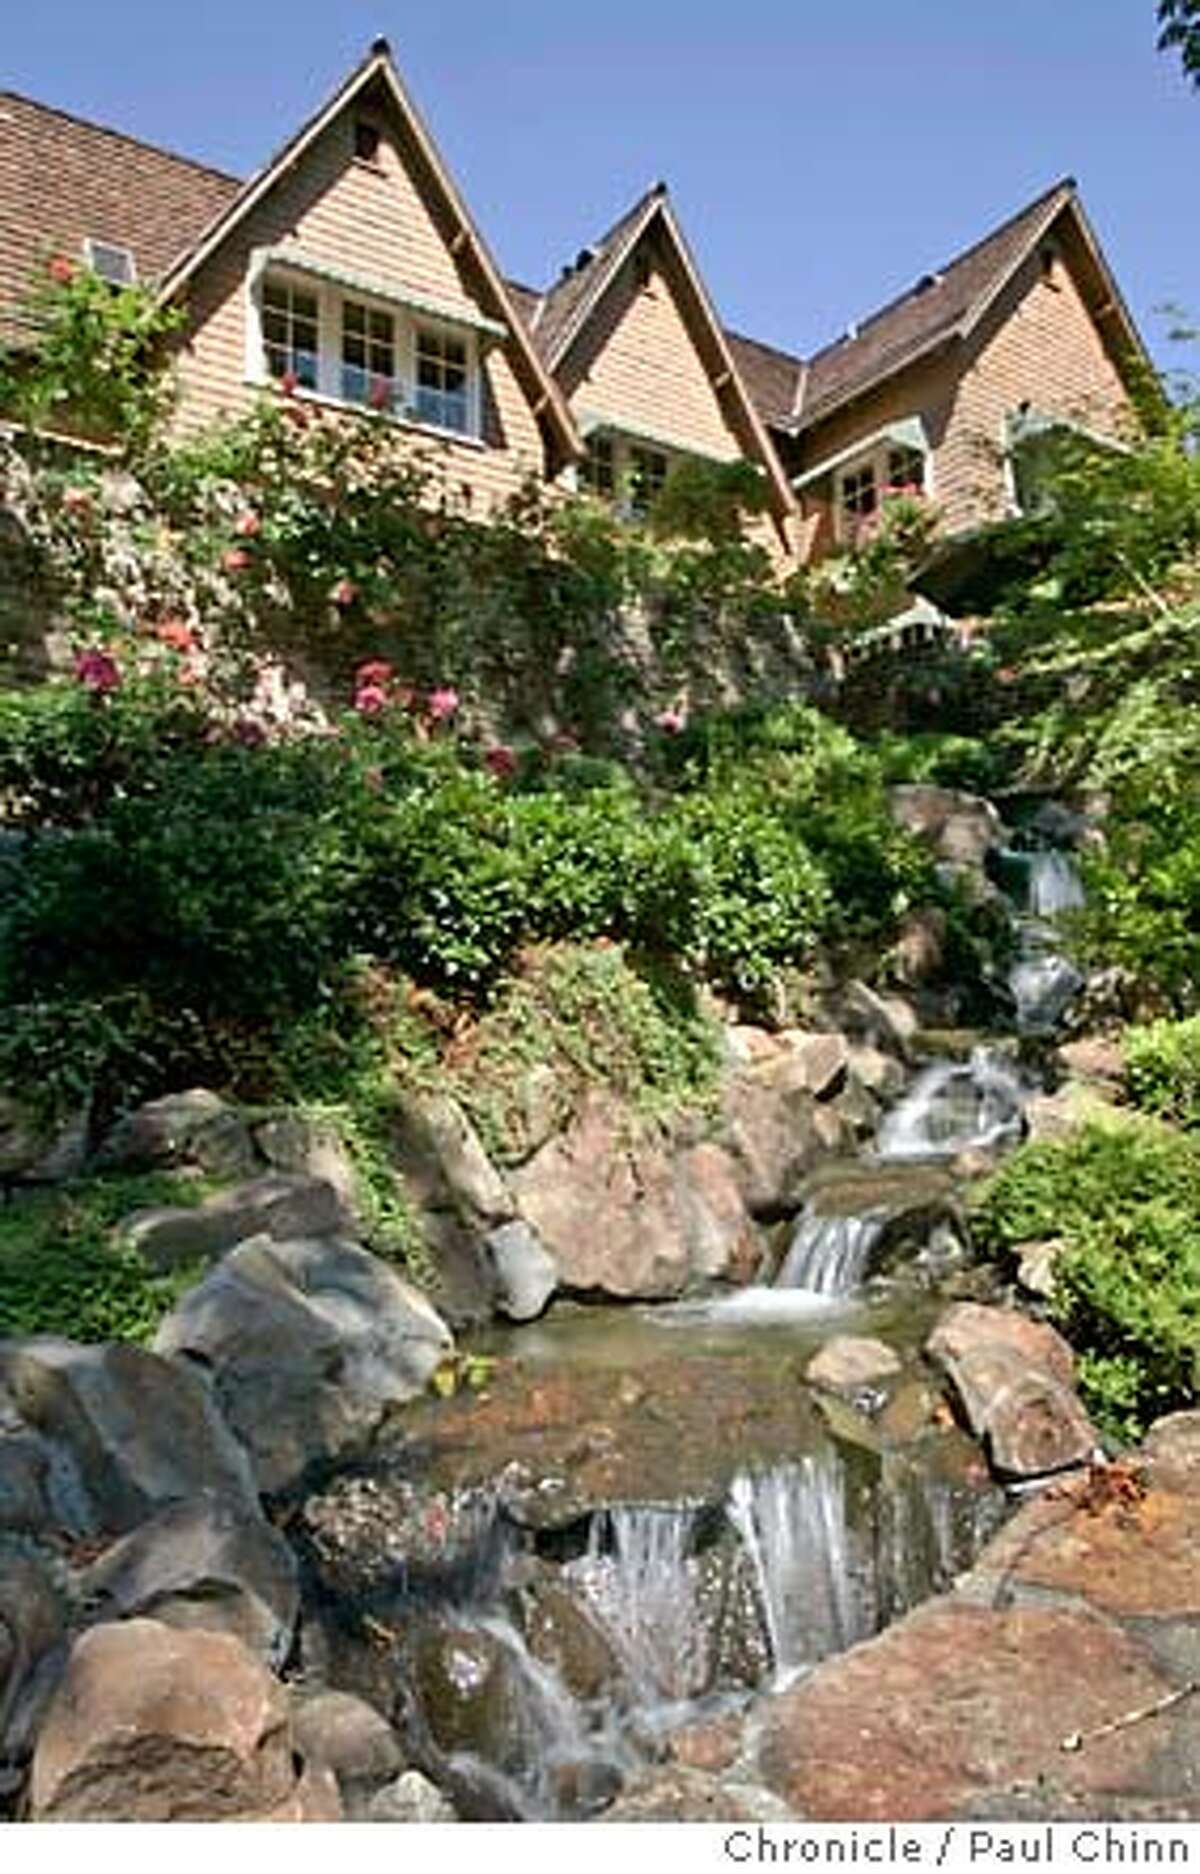 A waterfall cascades down the hill at an estate on three acres with a total of 11 bedrooms and nine-and-a-half baths in Ross, Calif. on Saturday, September 16, 2006. Originally built in 1896, the 6,000 square foot property is on the market for $22 million and features a tennis court, swimming pool and enormous six car garage. PAUL CHINN/The Chronicle MANDATORY CREDIT FOR PHOTOGRAPHER AND S.F. CHRONICLE/ - MAGS OUT